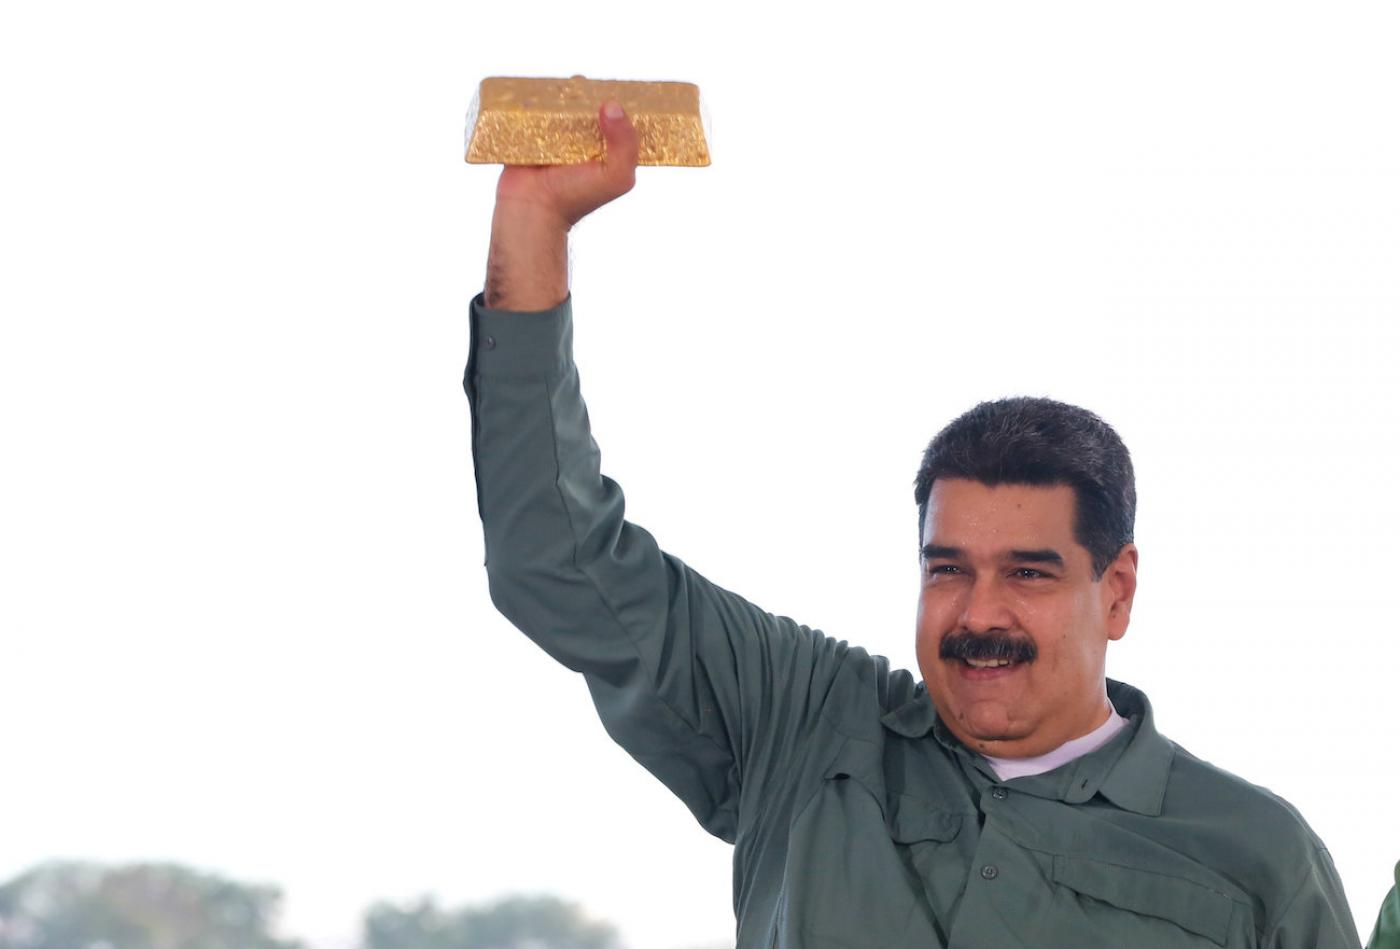 Venezuela to sell 15 tonnes of gold to UAE, reports say